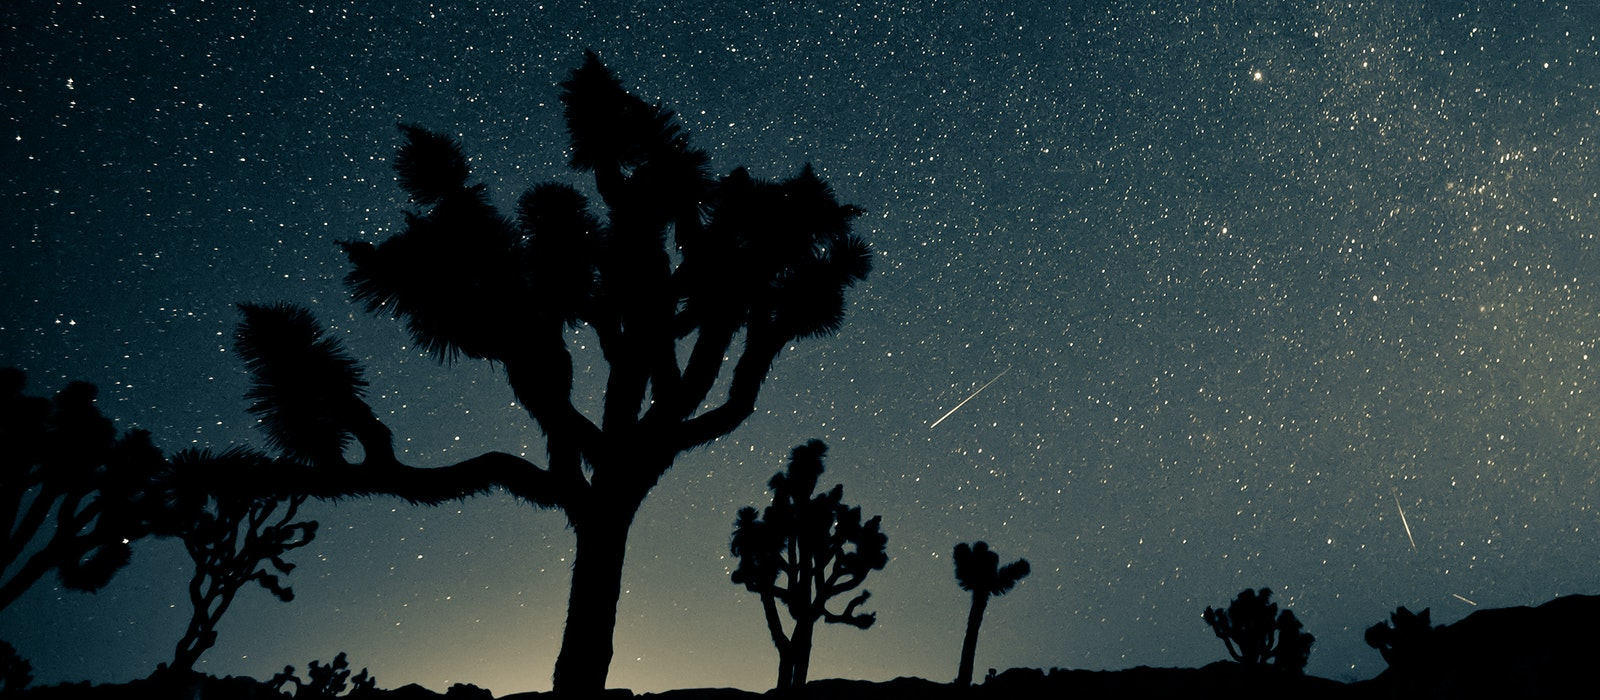 The skies should be clear in Joshua Tree National Park this weekend for viewing the Perseids.